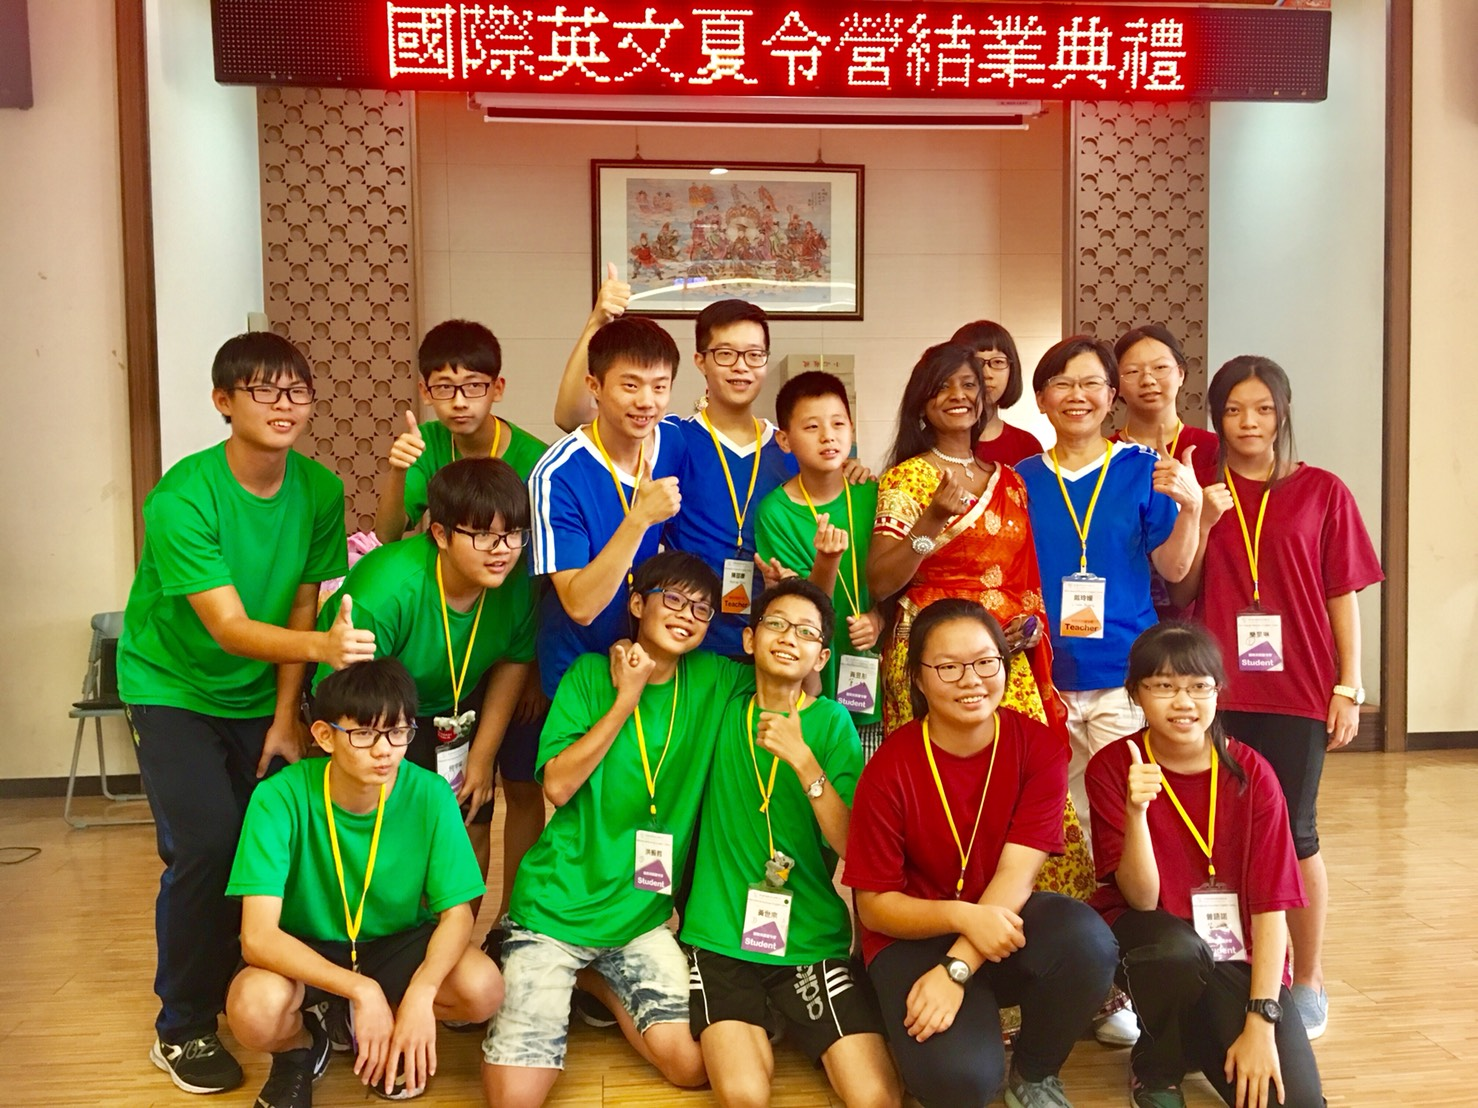 Reena Augustine poses with some of the students participating in the Changhua Parent Union Advisory Council. (Image: Changhua Parent Union Advisory Council)